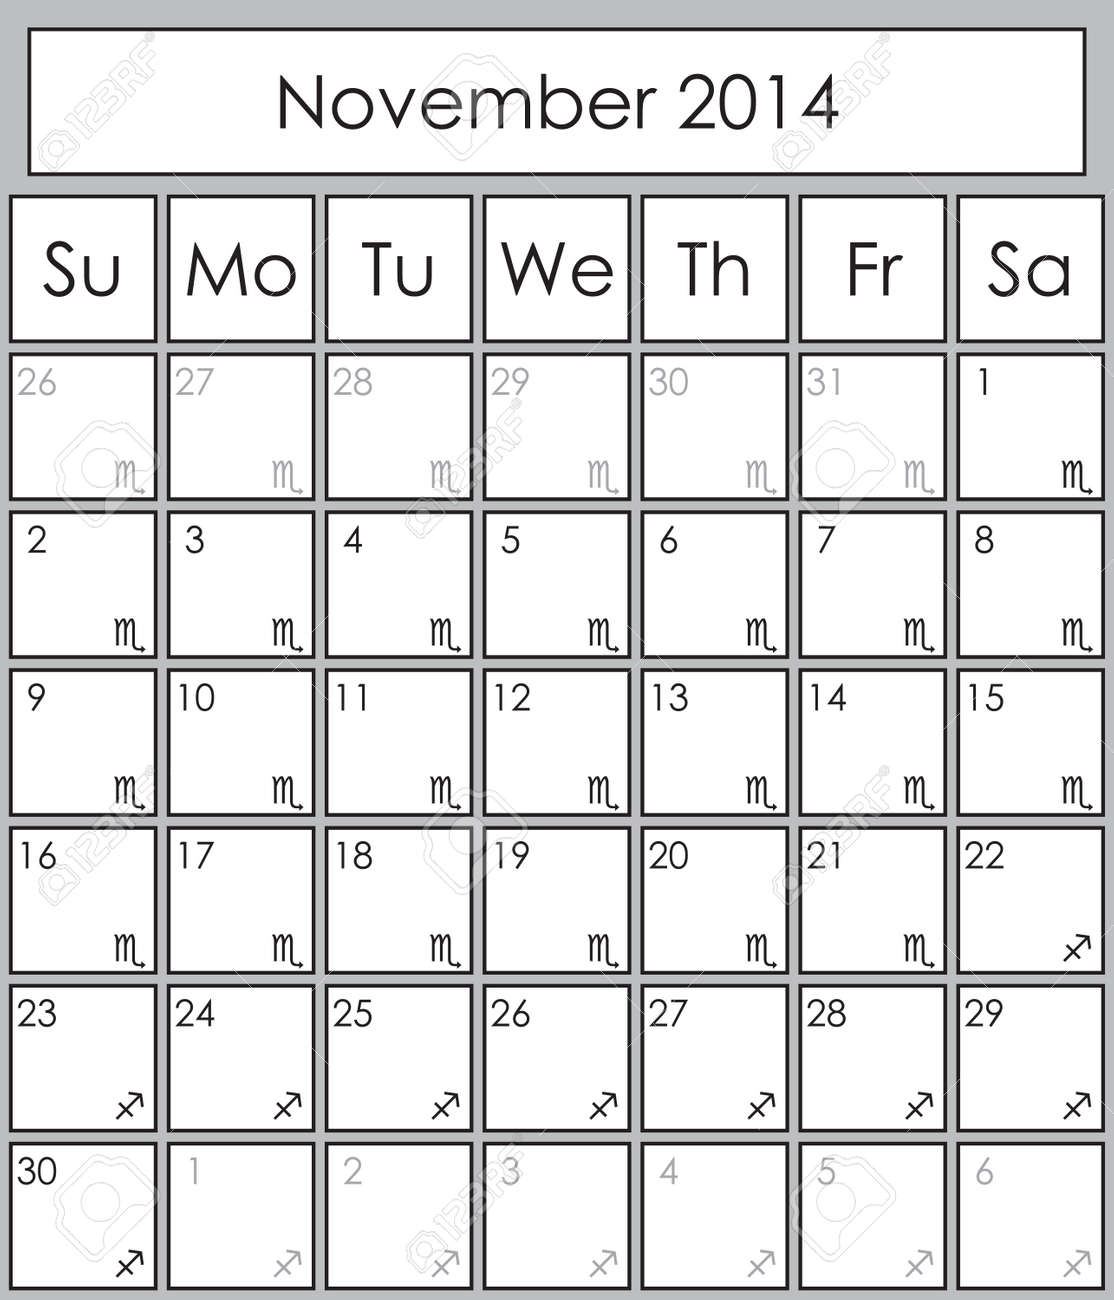 Planner November 2014 with zodiac signs Scorpio &, Sagittarius